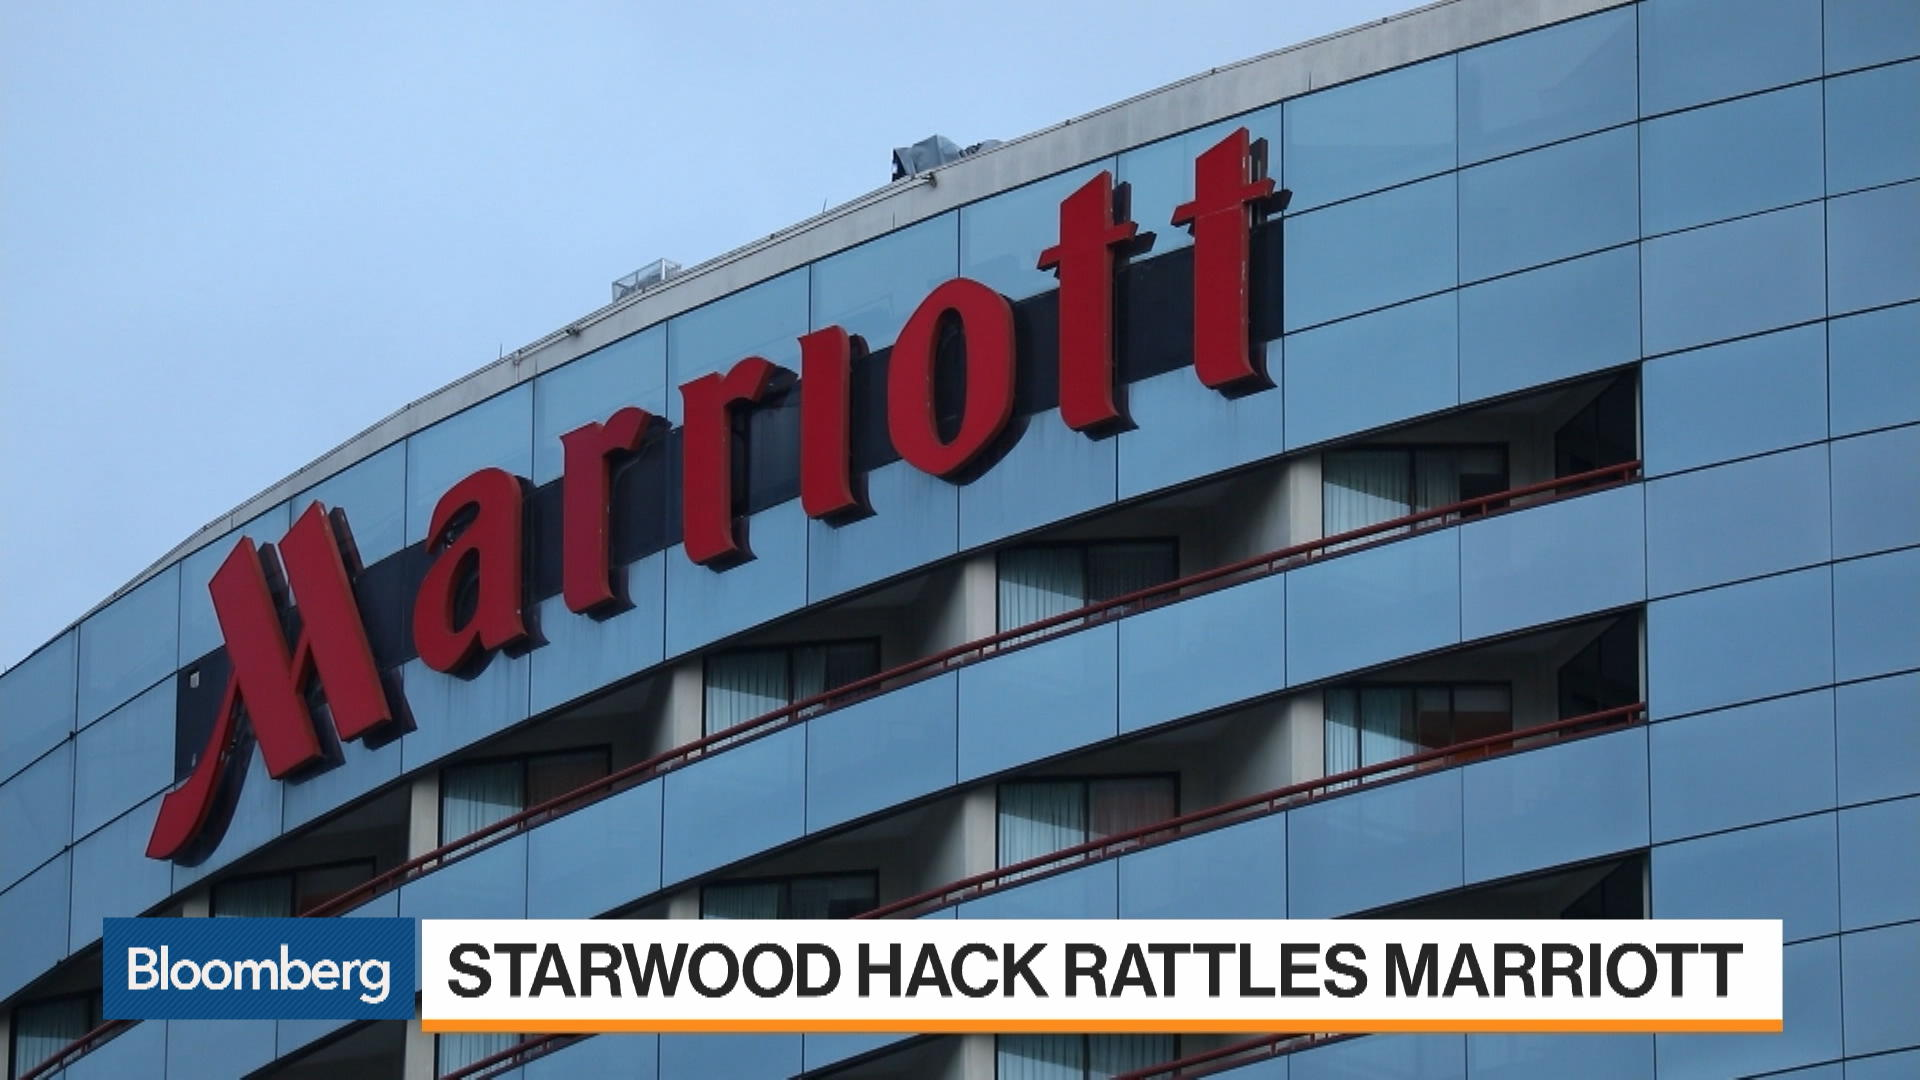 Marriott Hit by Starwood Hack That Ranks Among Biggest Ever - Bloomberg